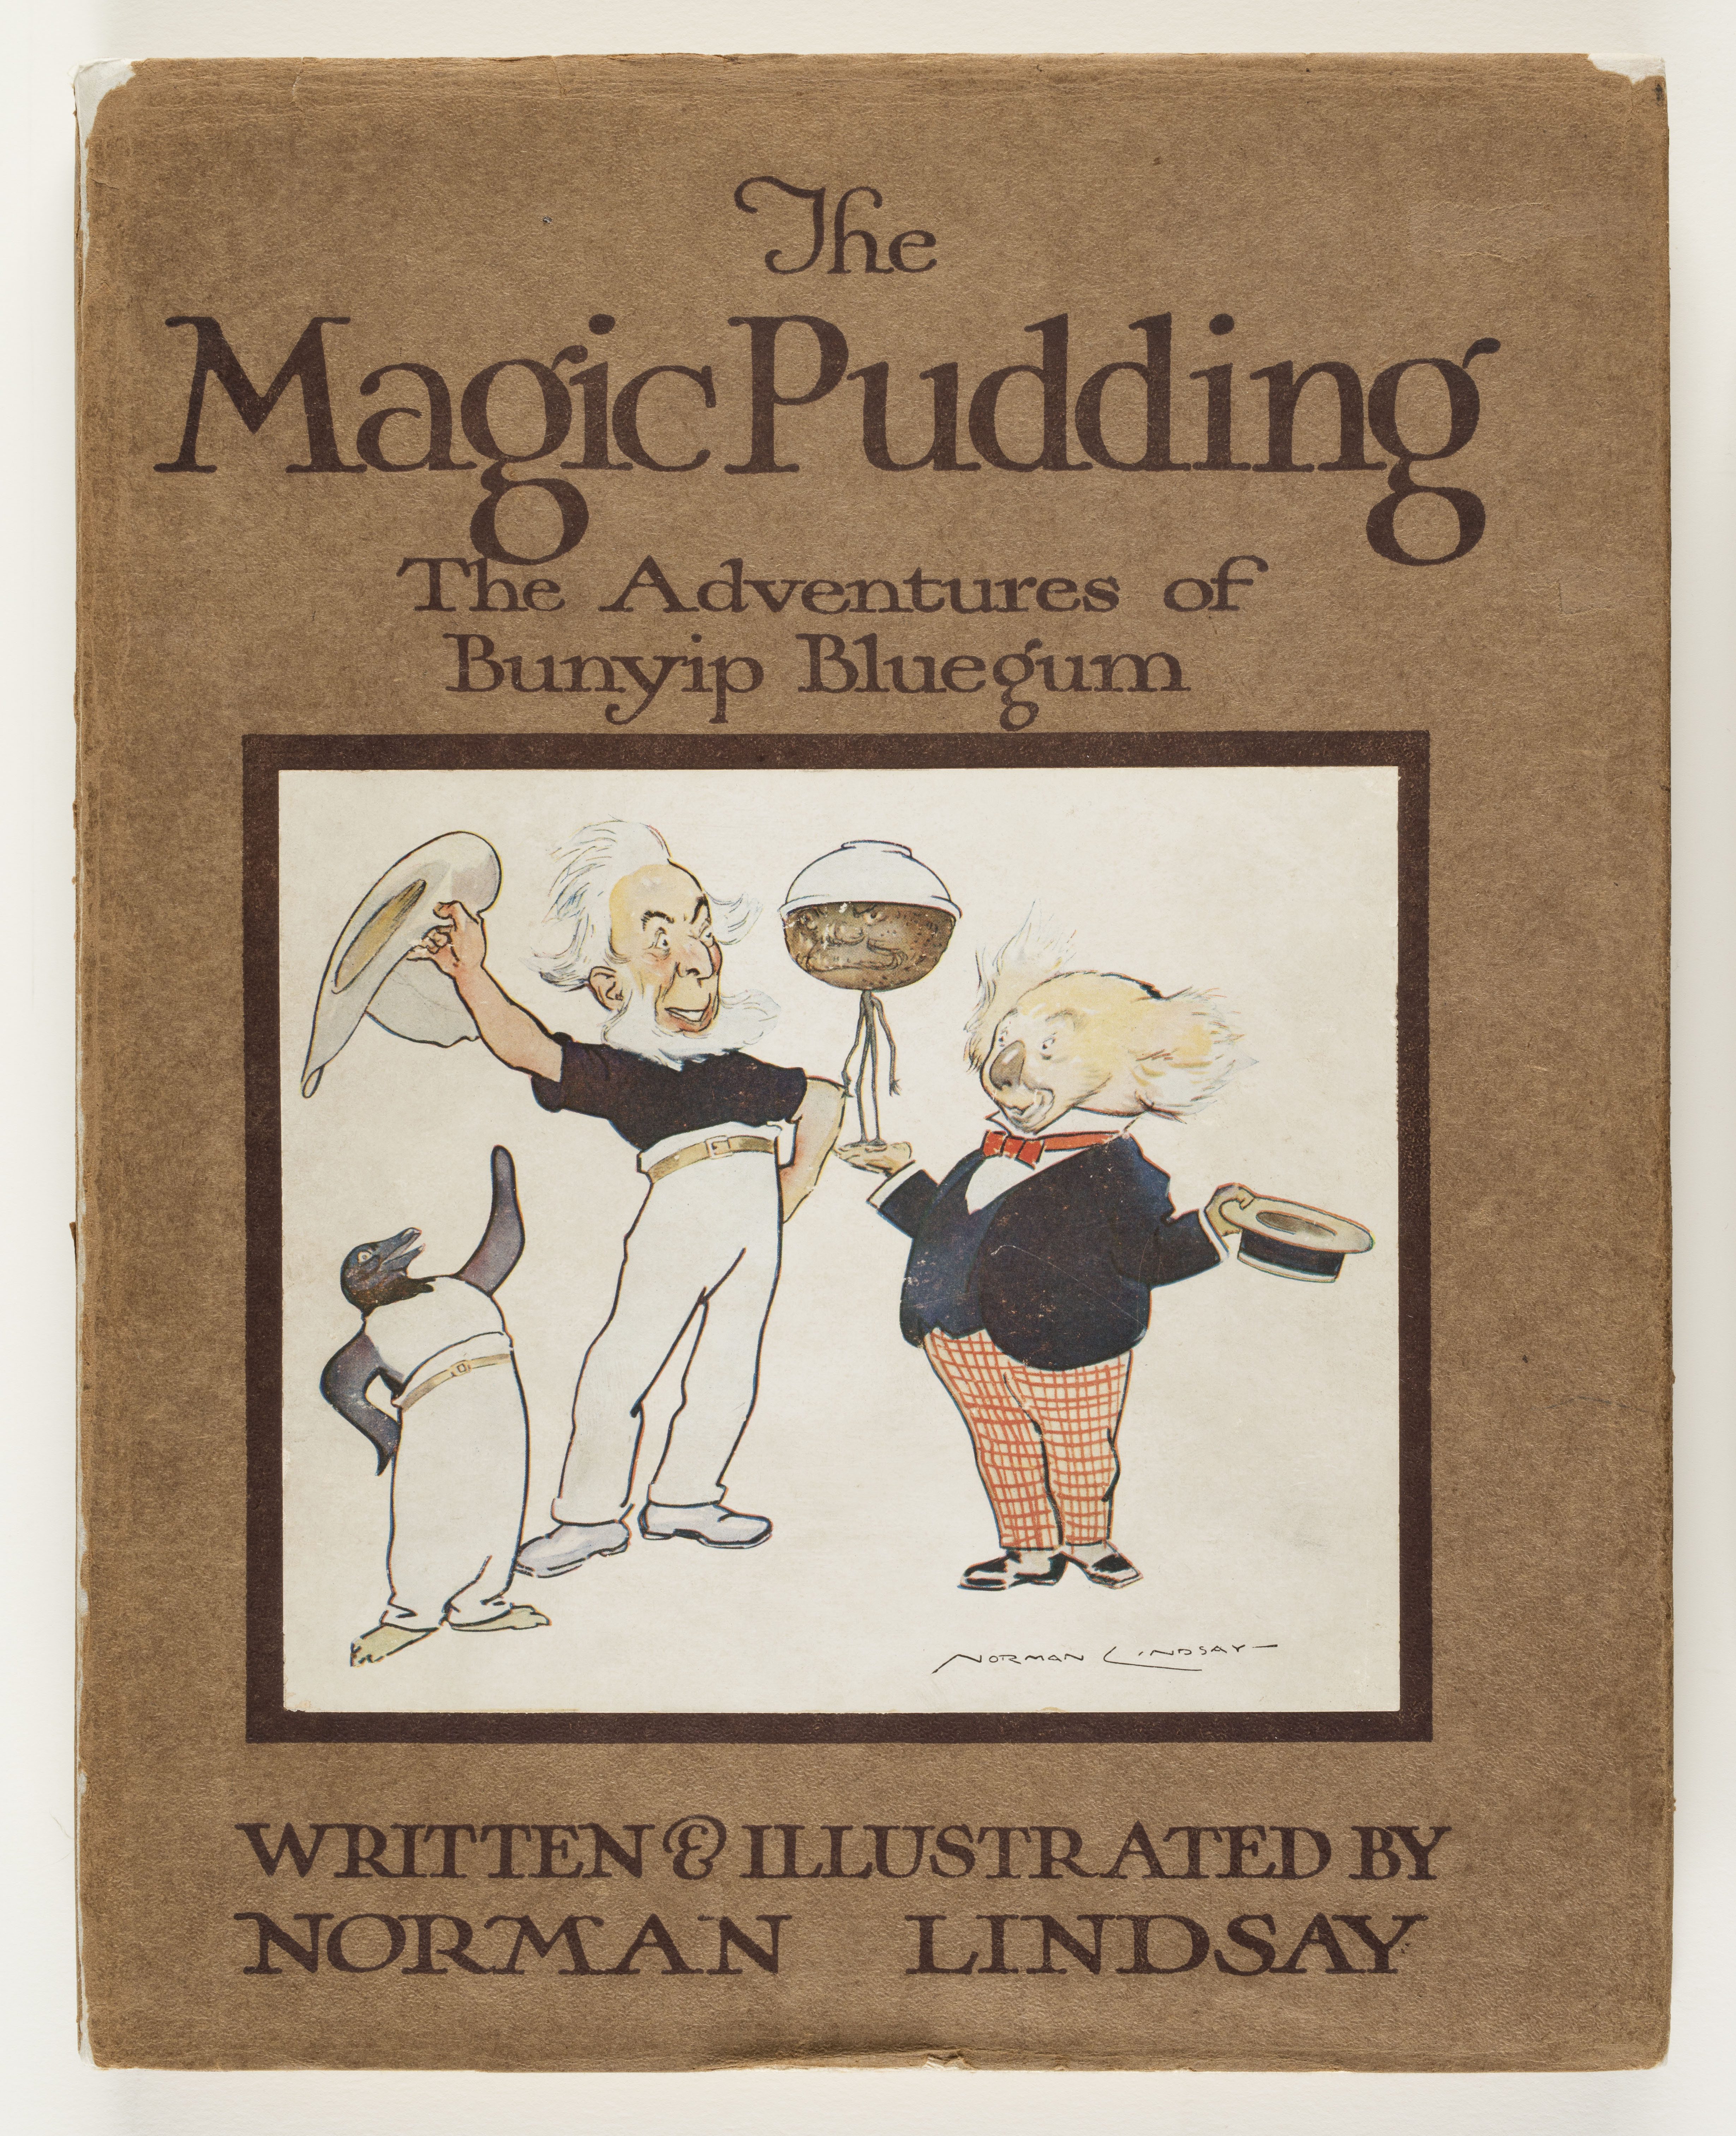 The Magic Pudding book jacket, 1918